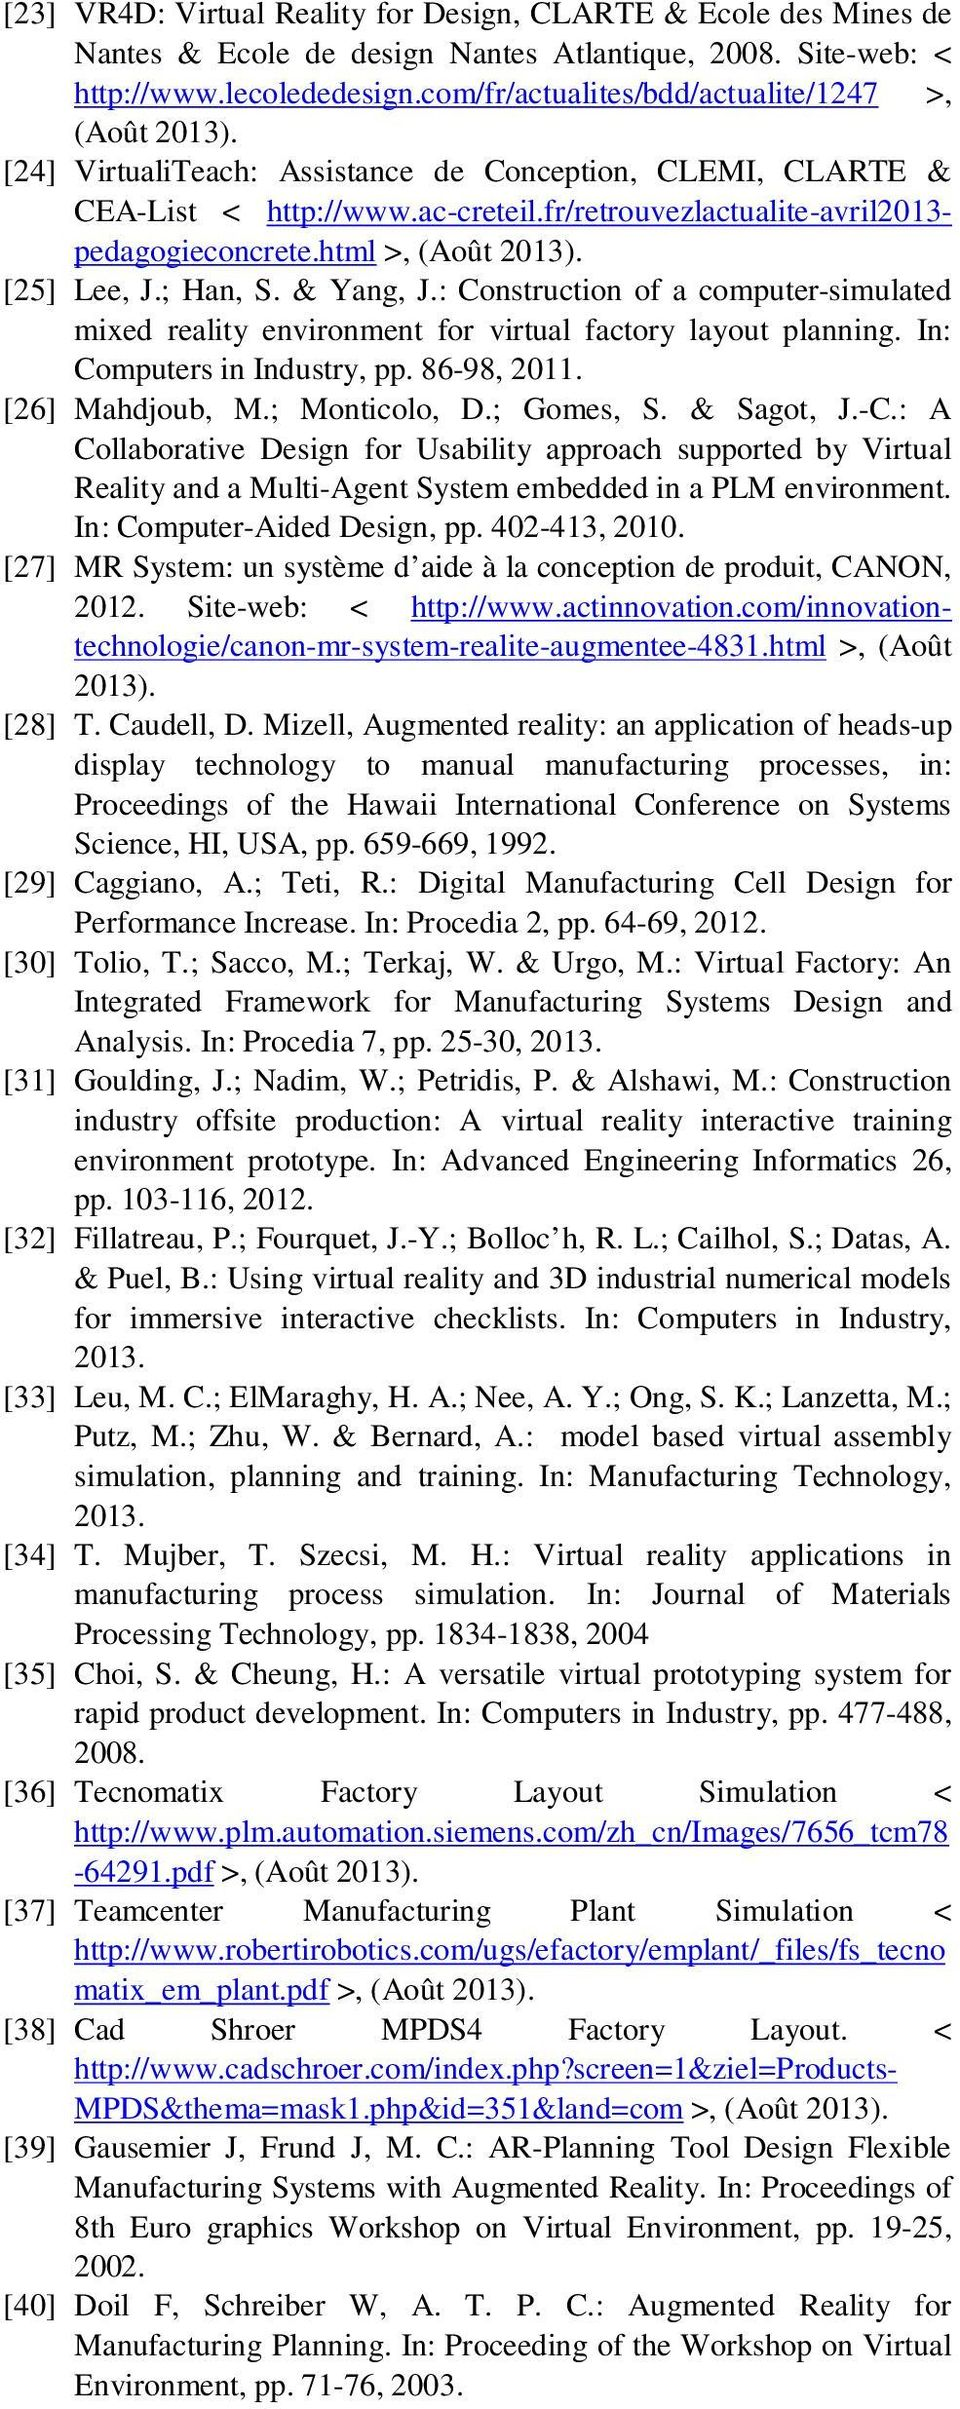 html >, (Août 2013). [25] Lee, J.; Han, S. & Yang, J.: Construction of a computer-simulated mixed reality environment for virtual factory layout planning. In: Computers in Industry, pp. 86-98, 2011.